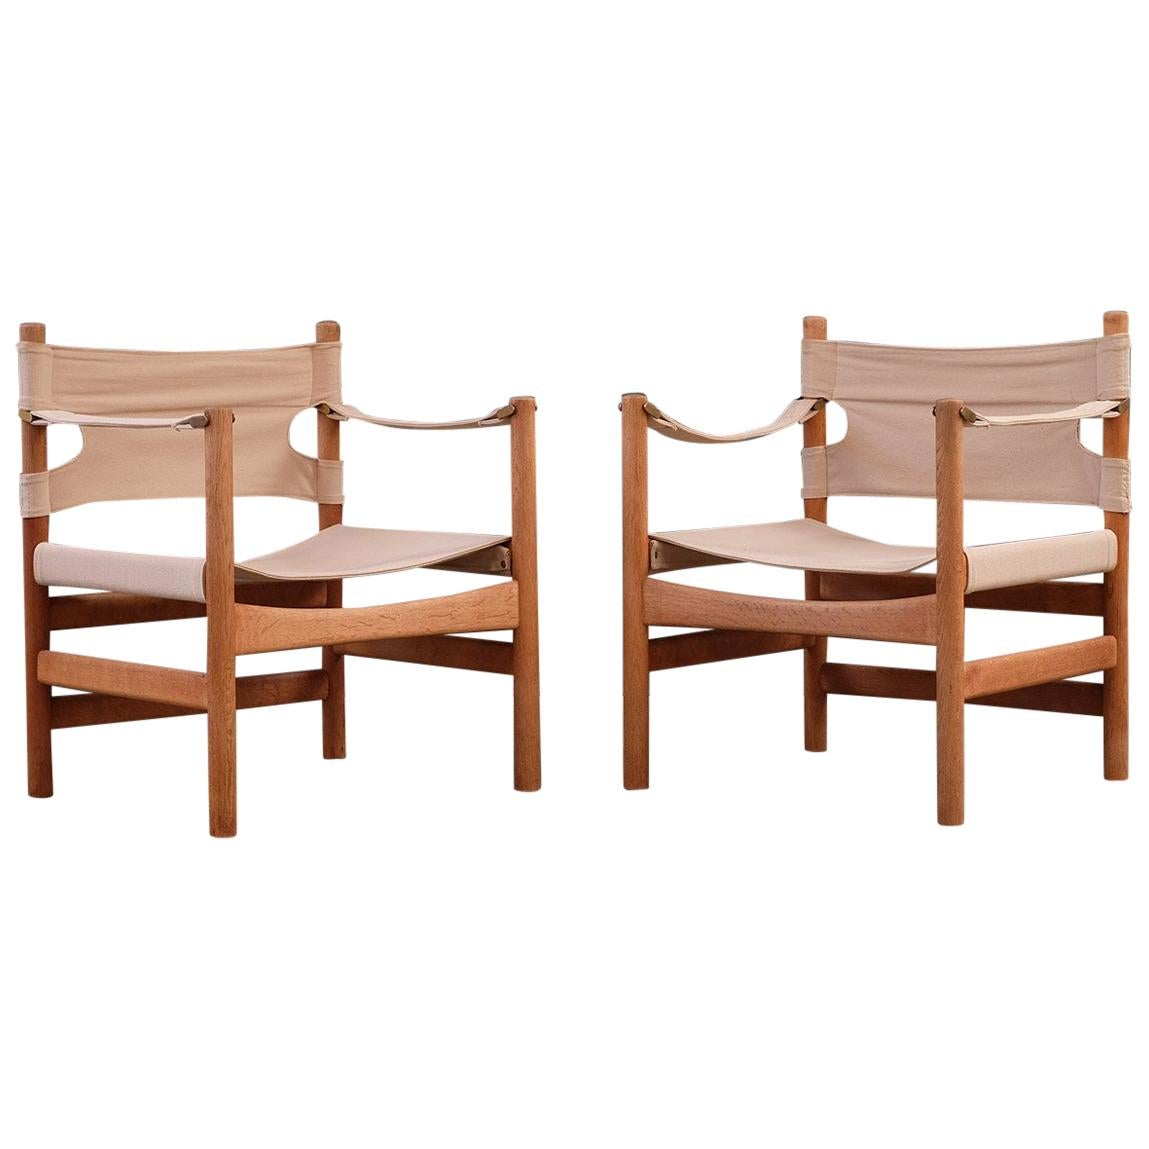 Safari Chairs Borge Mogensen Safari Chairs